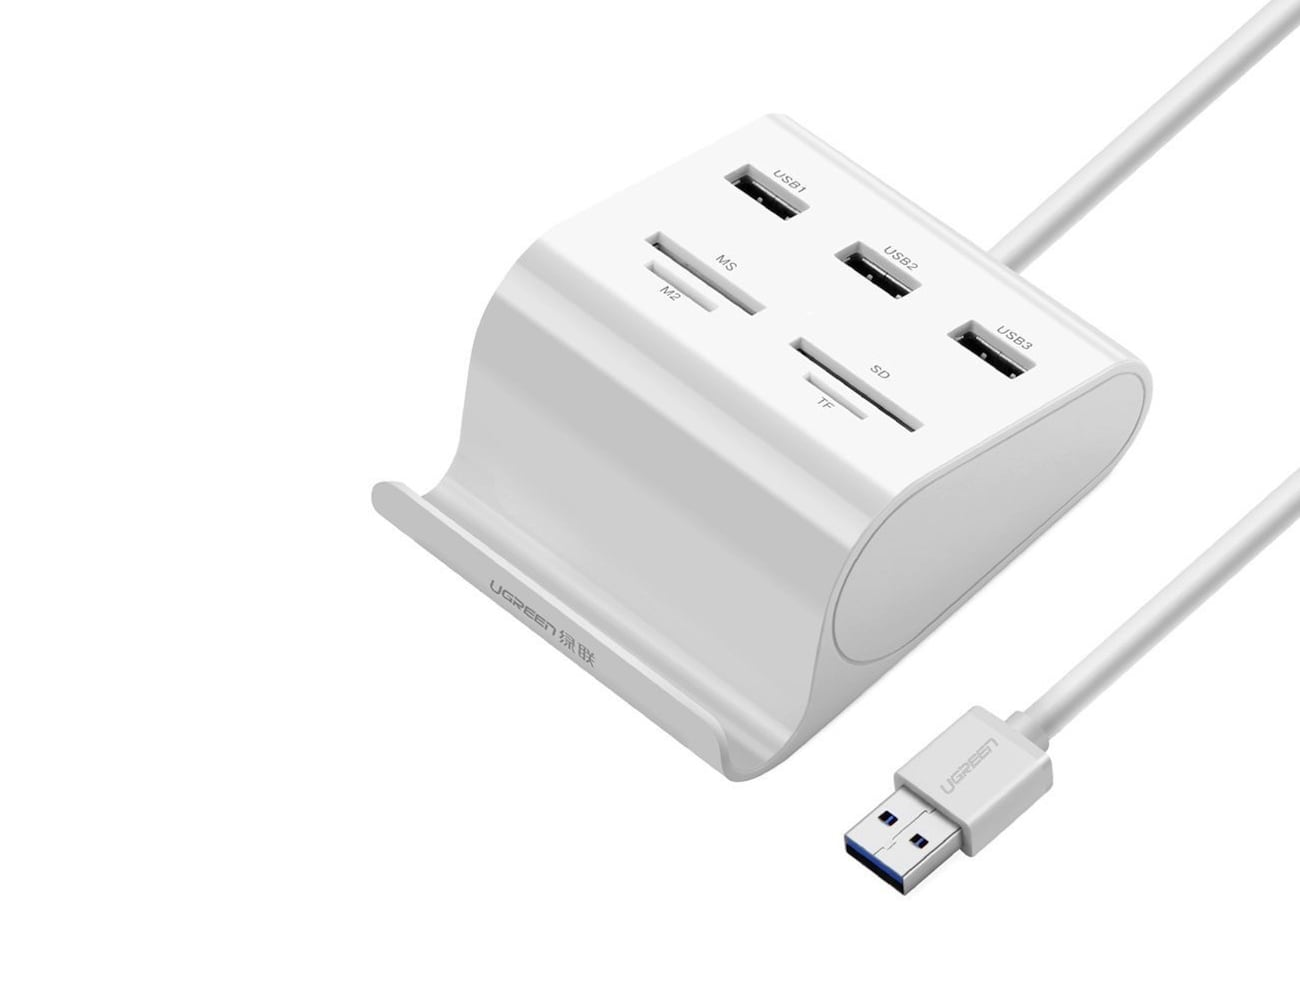 Ugreen USB 3.0 Hub Card Reader